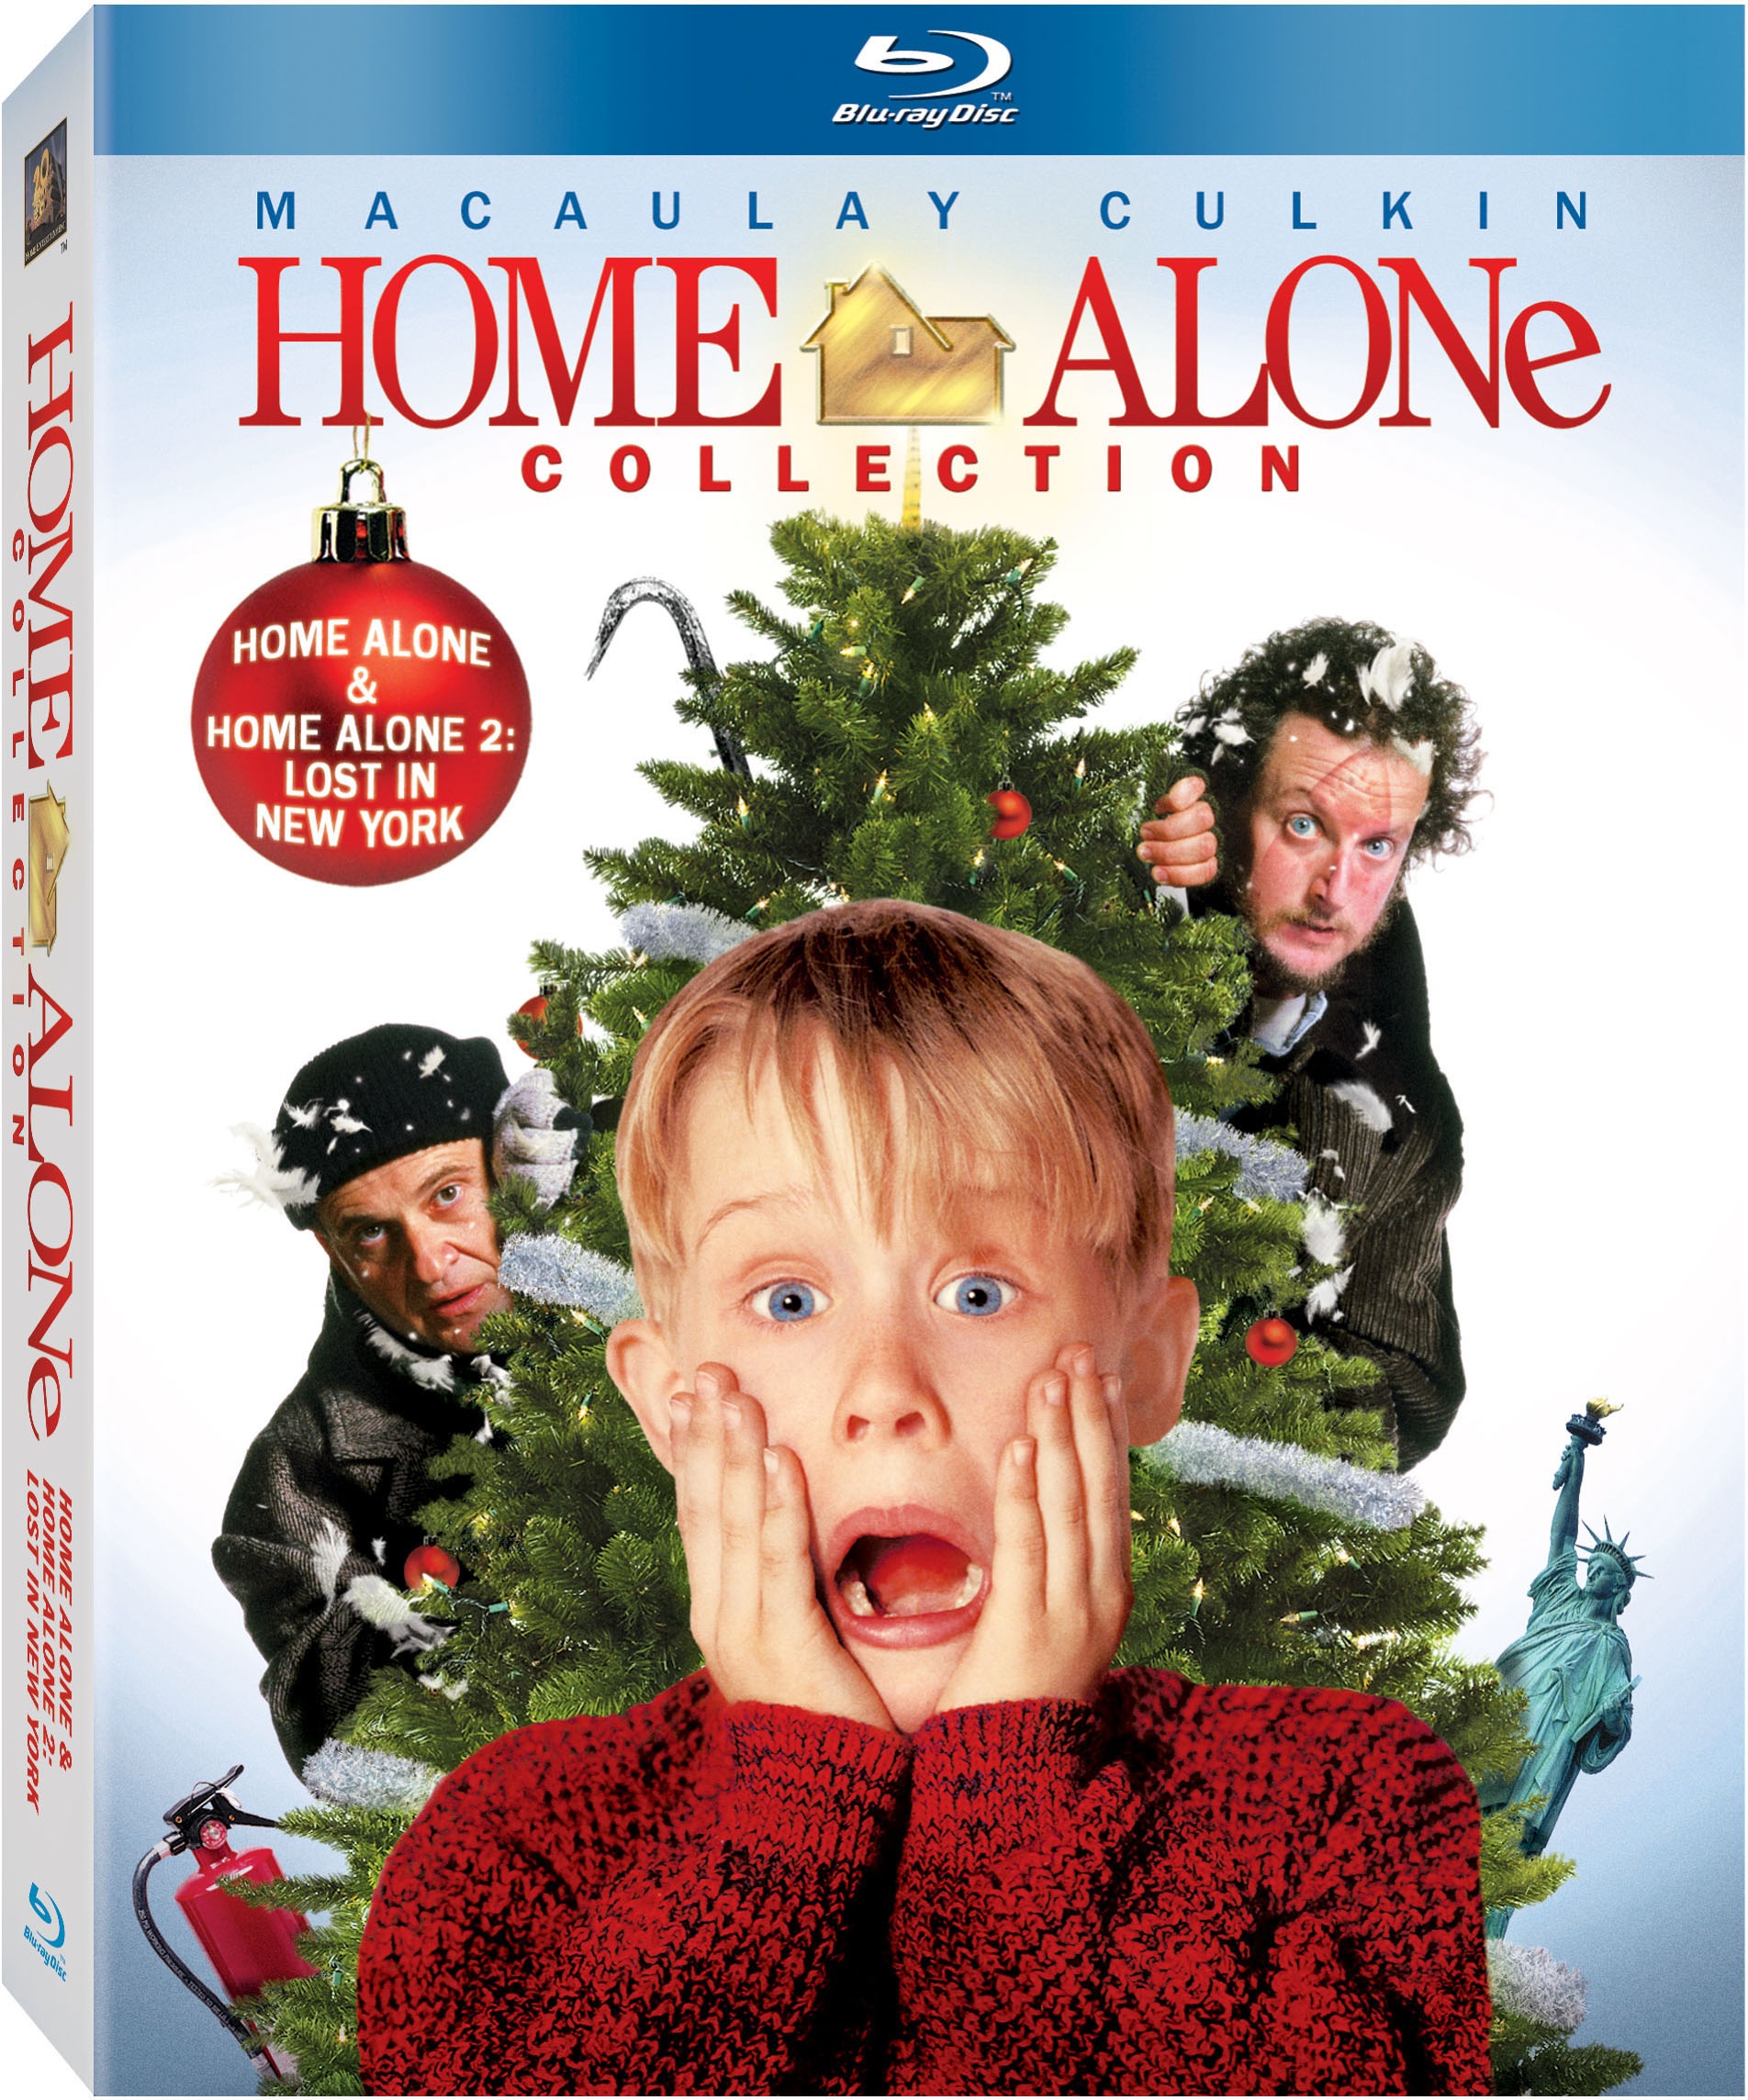 Christmas-Movies-to-Watch-with-Your-Family-2.jpg